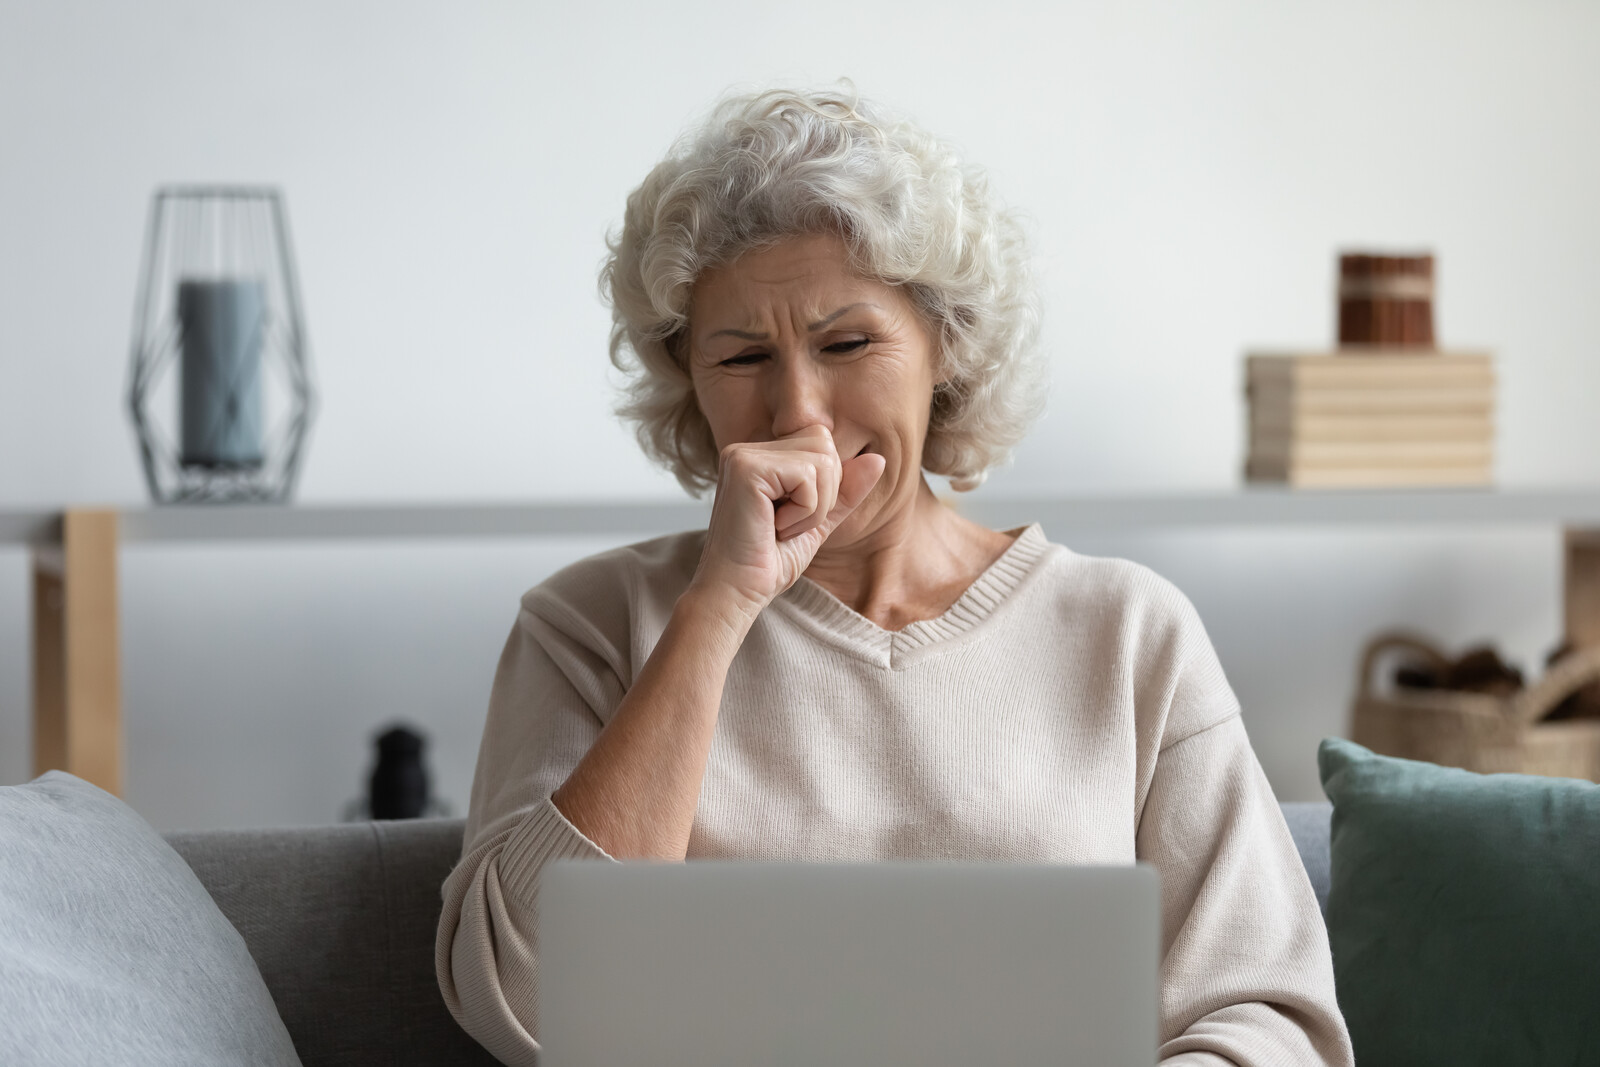 Depressed senior older woman sitting on her couch crying, looking at computer screen